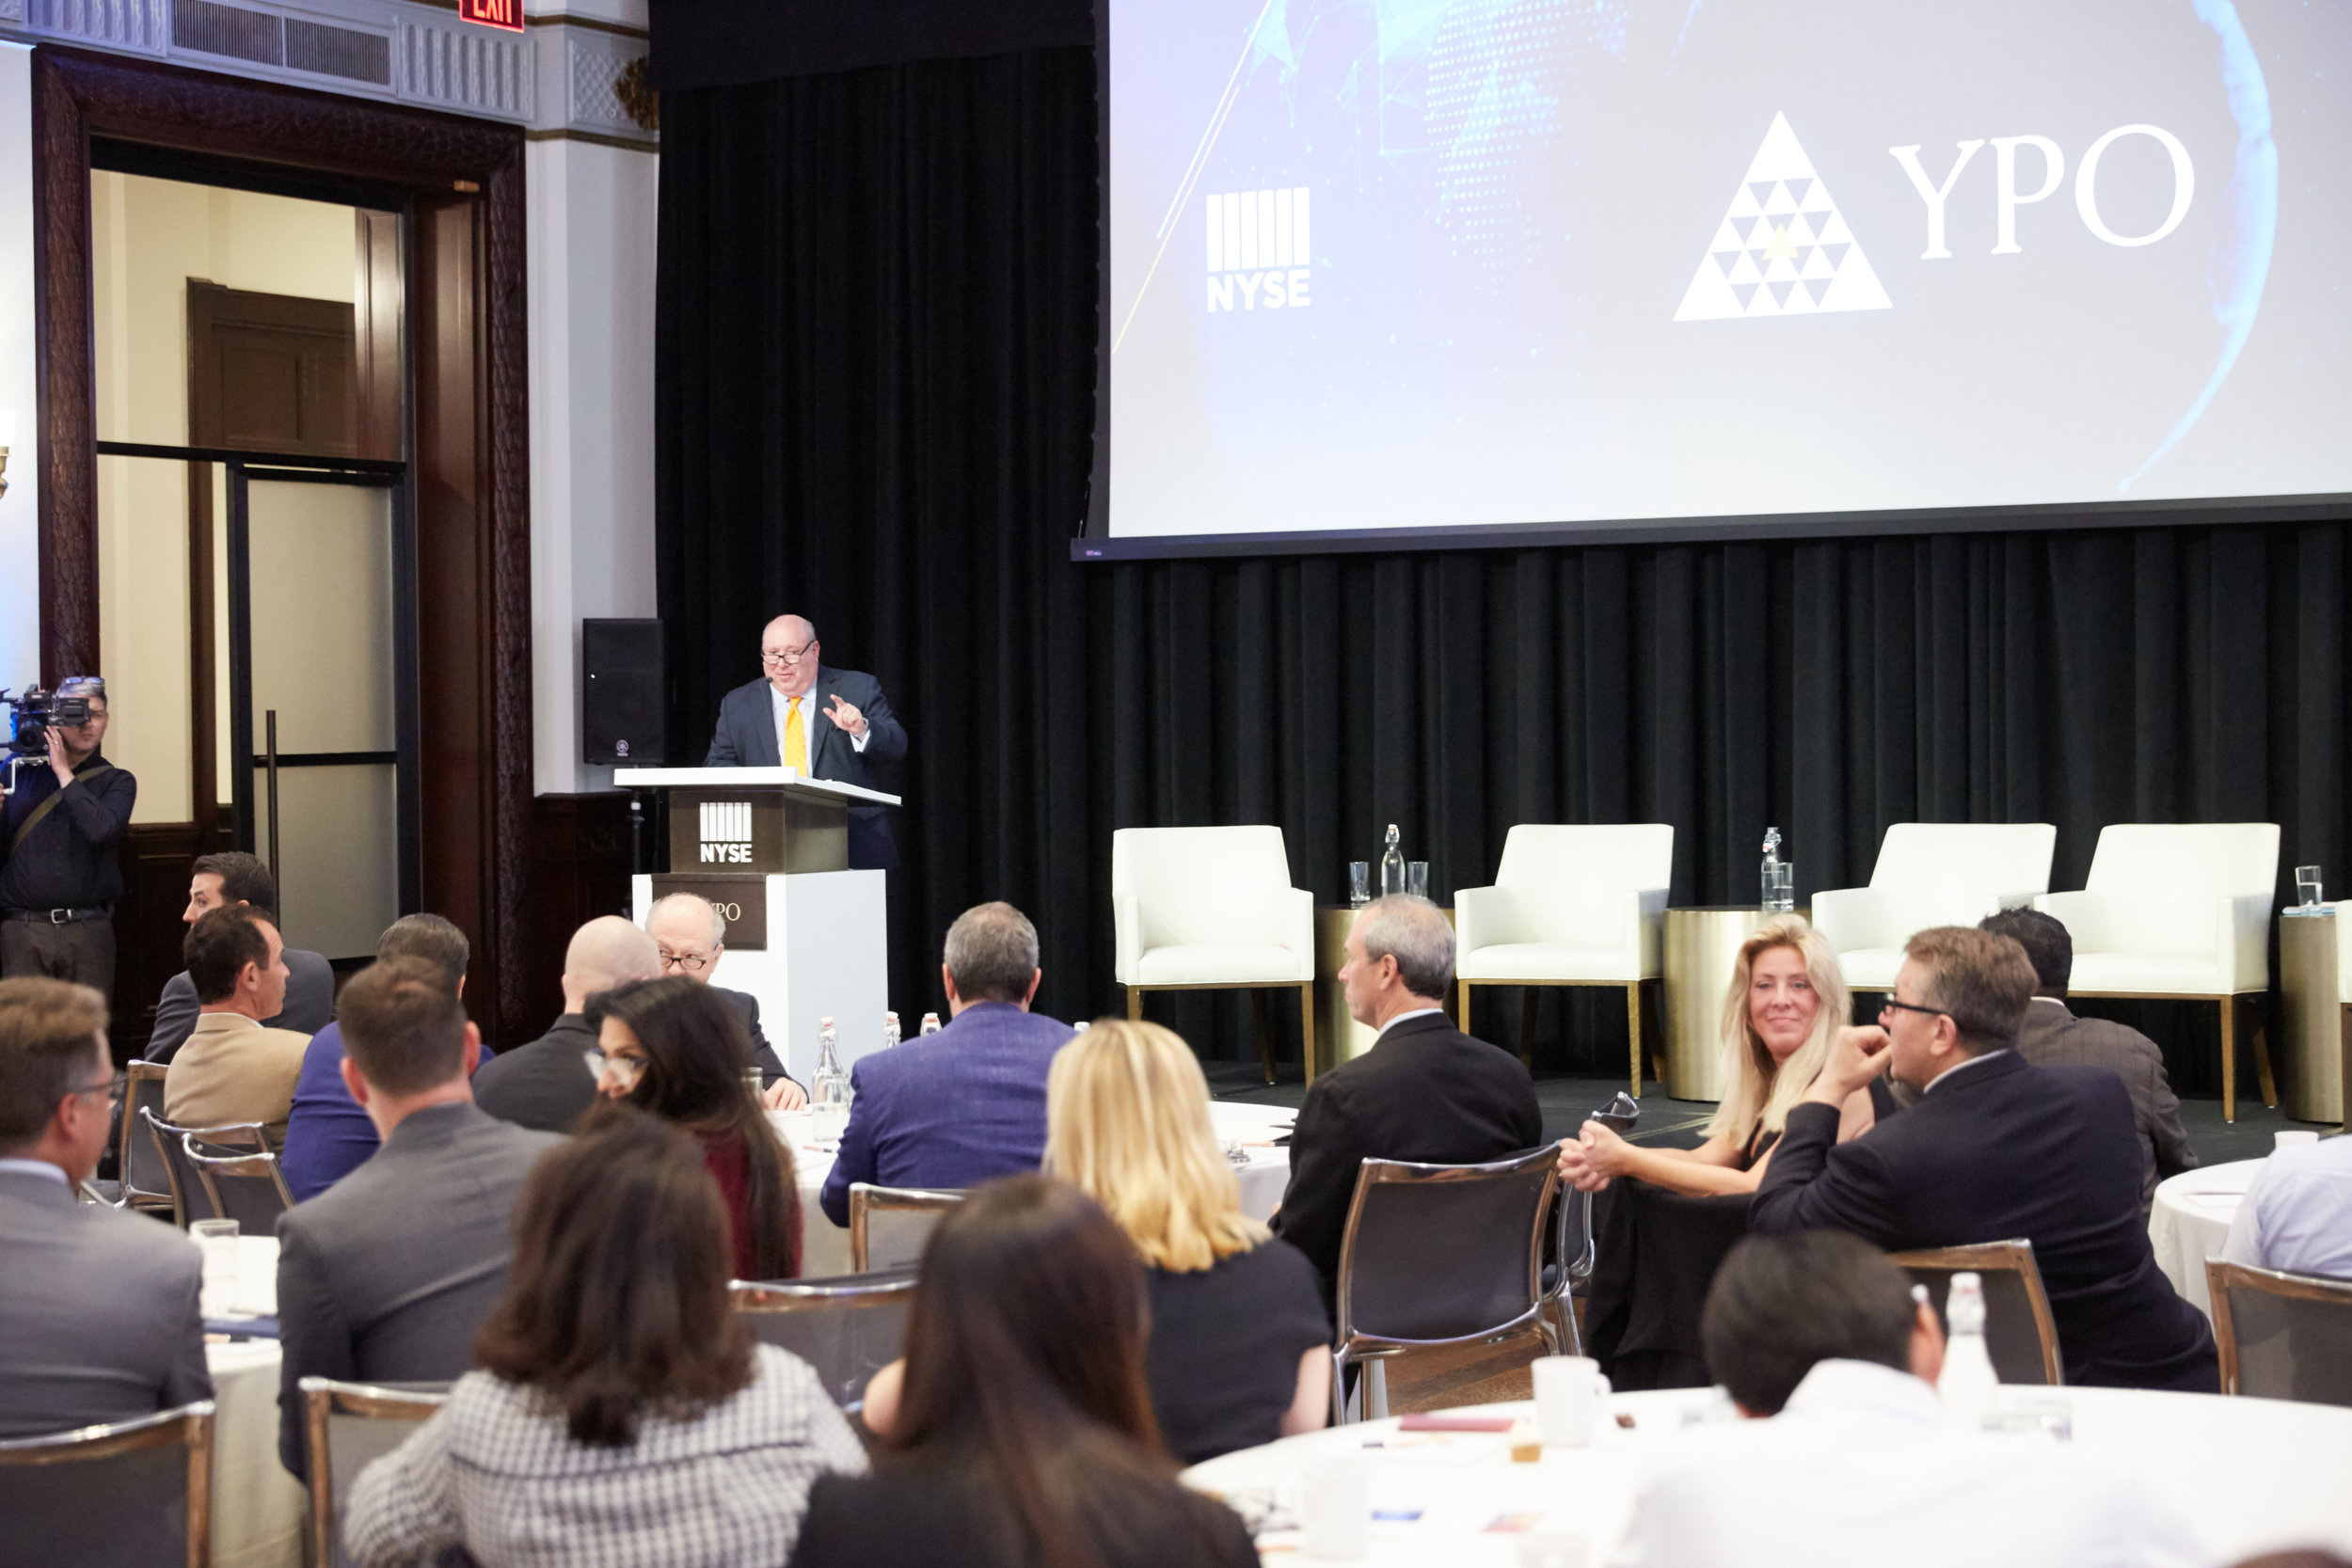 Speaking at YPO Innovation Week 2018, New York